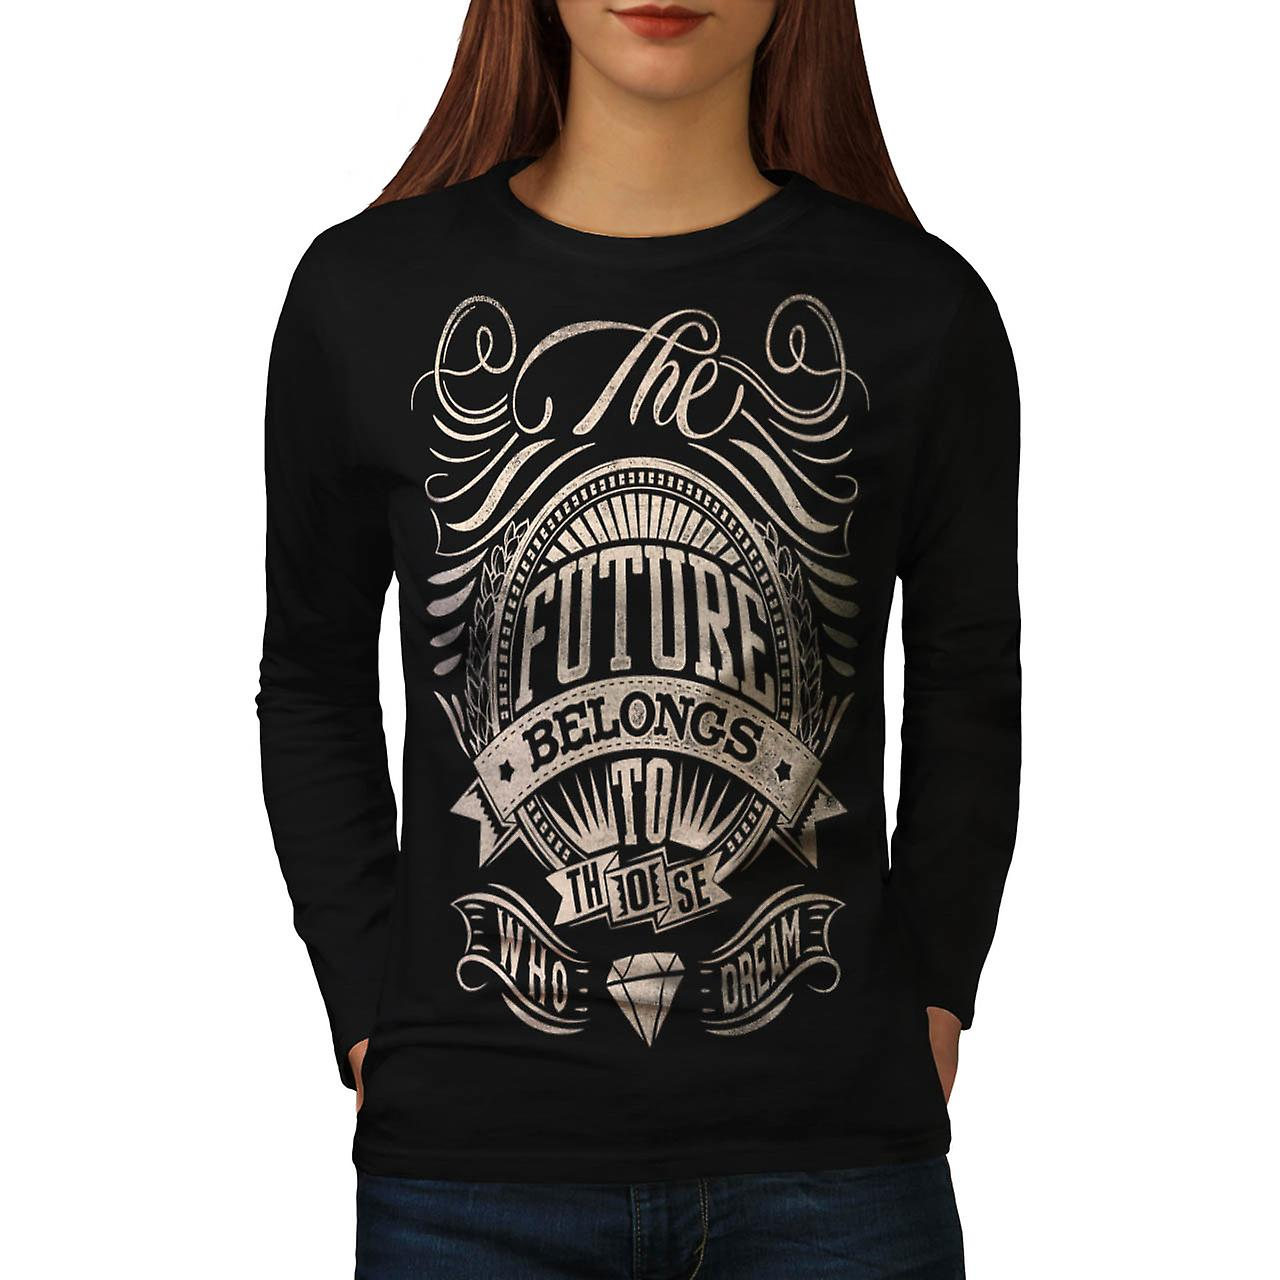 Future For Dream USA About Life Women Black Long Sleeve T-shirt | Wellcoda